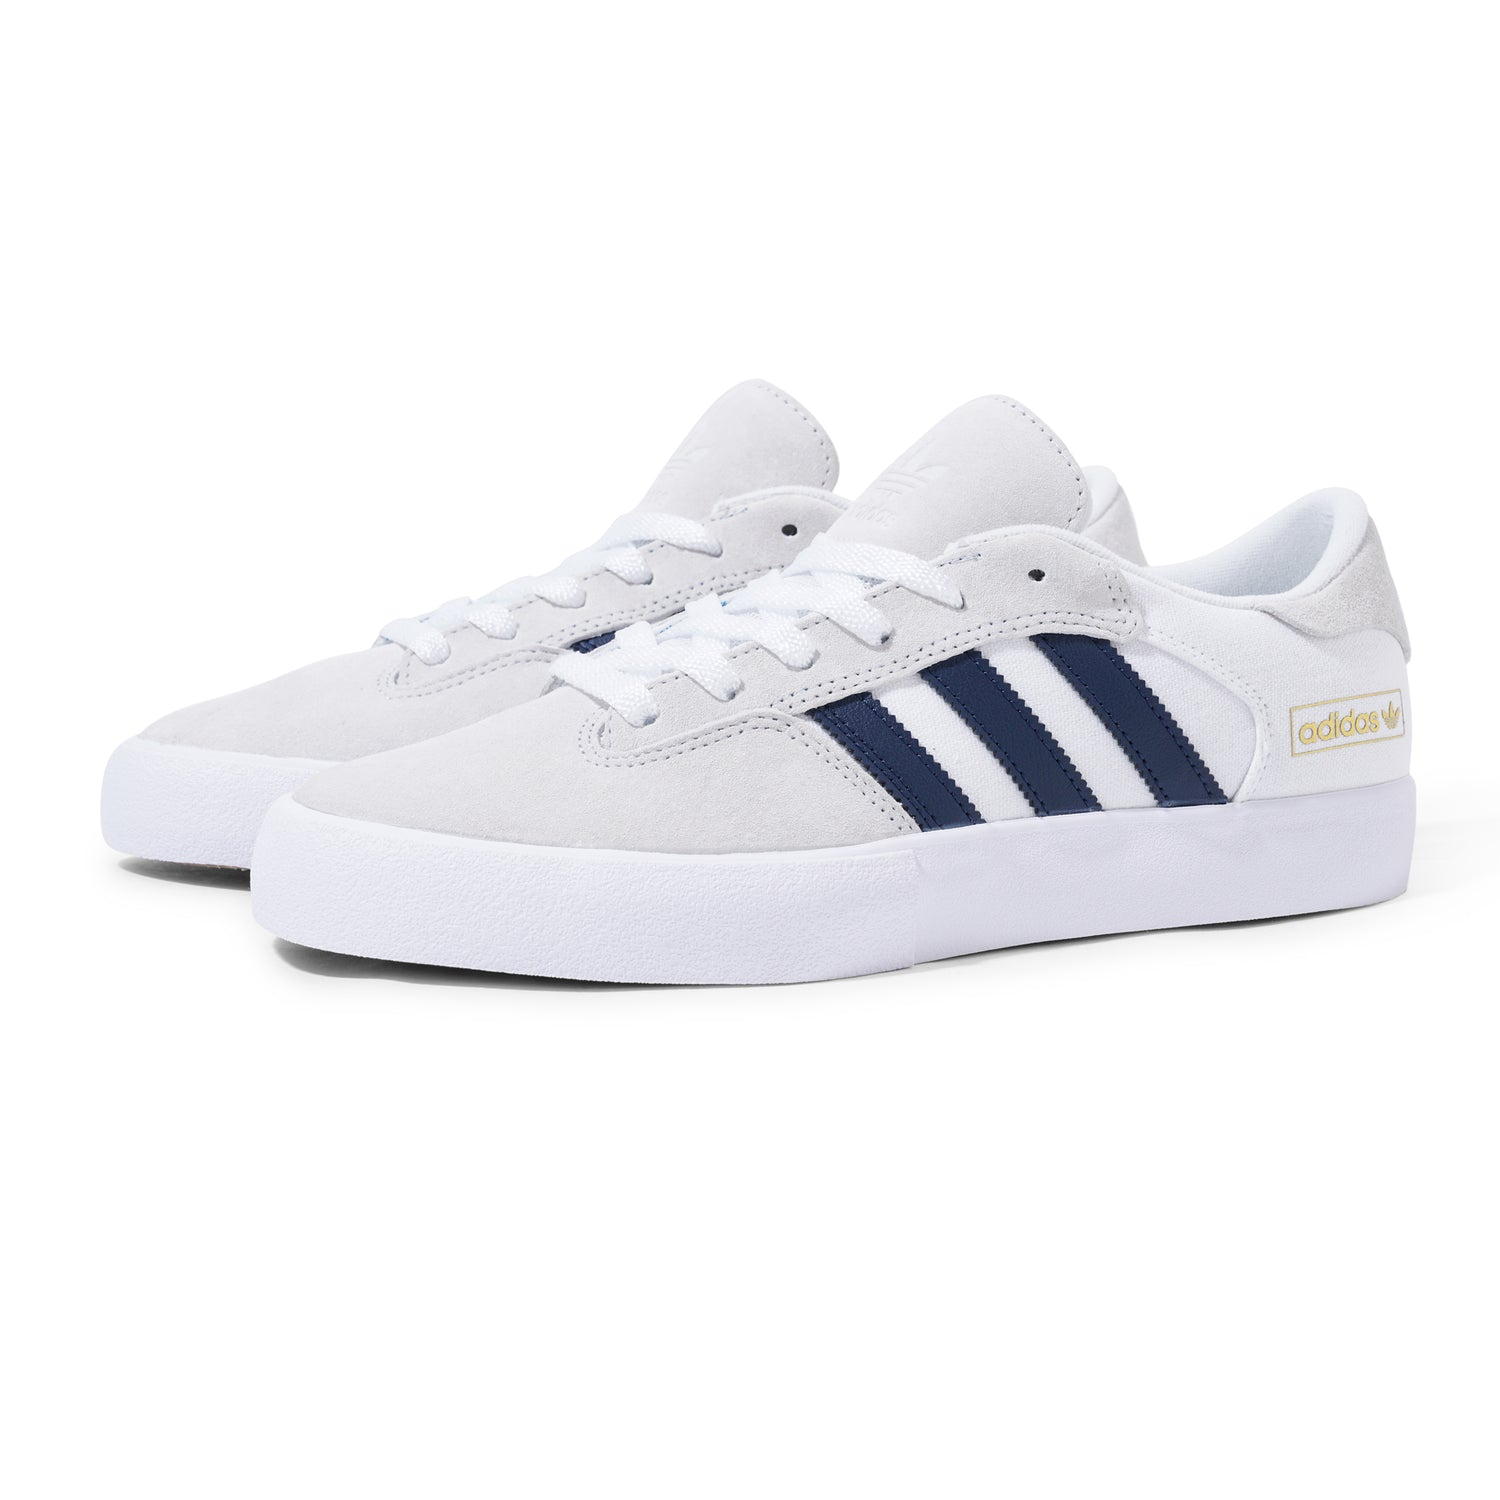 Matchbreak Super, White / Navy